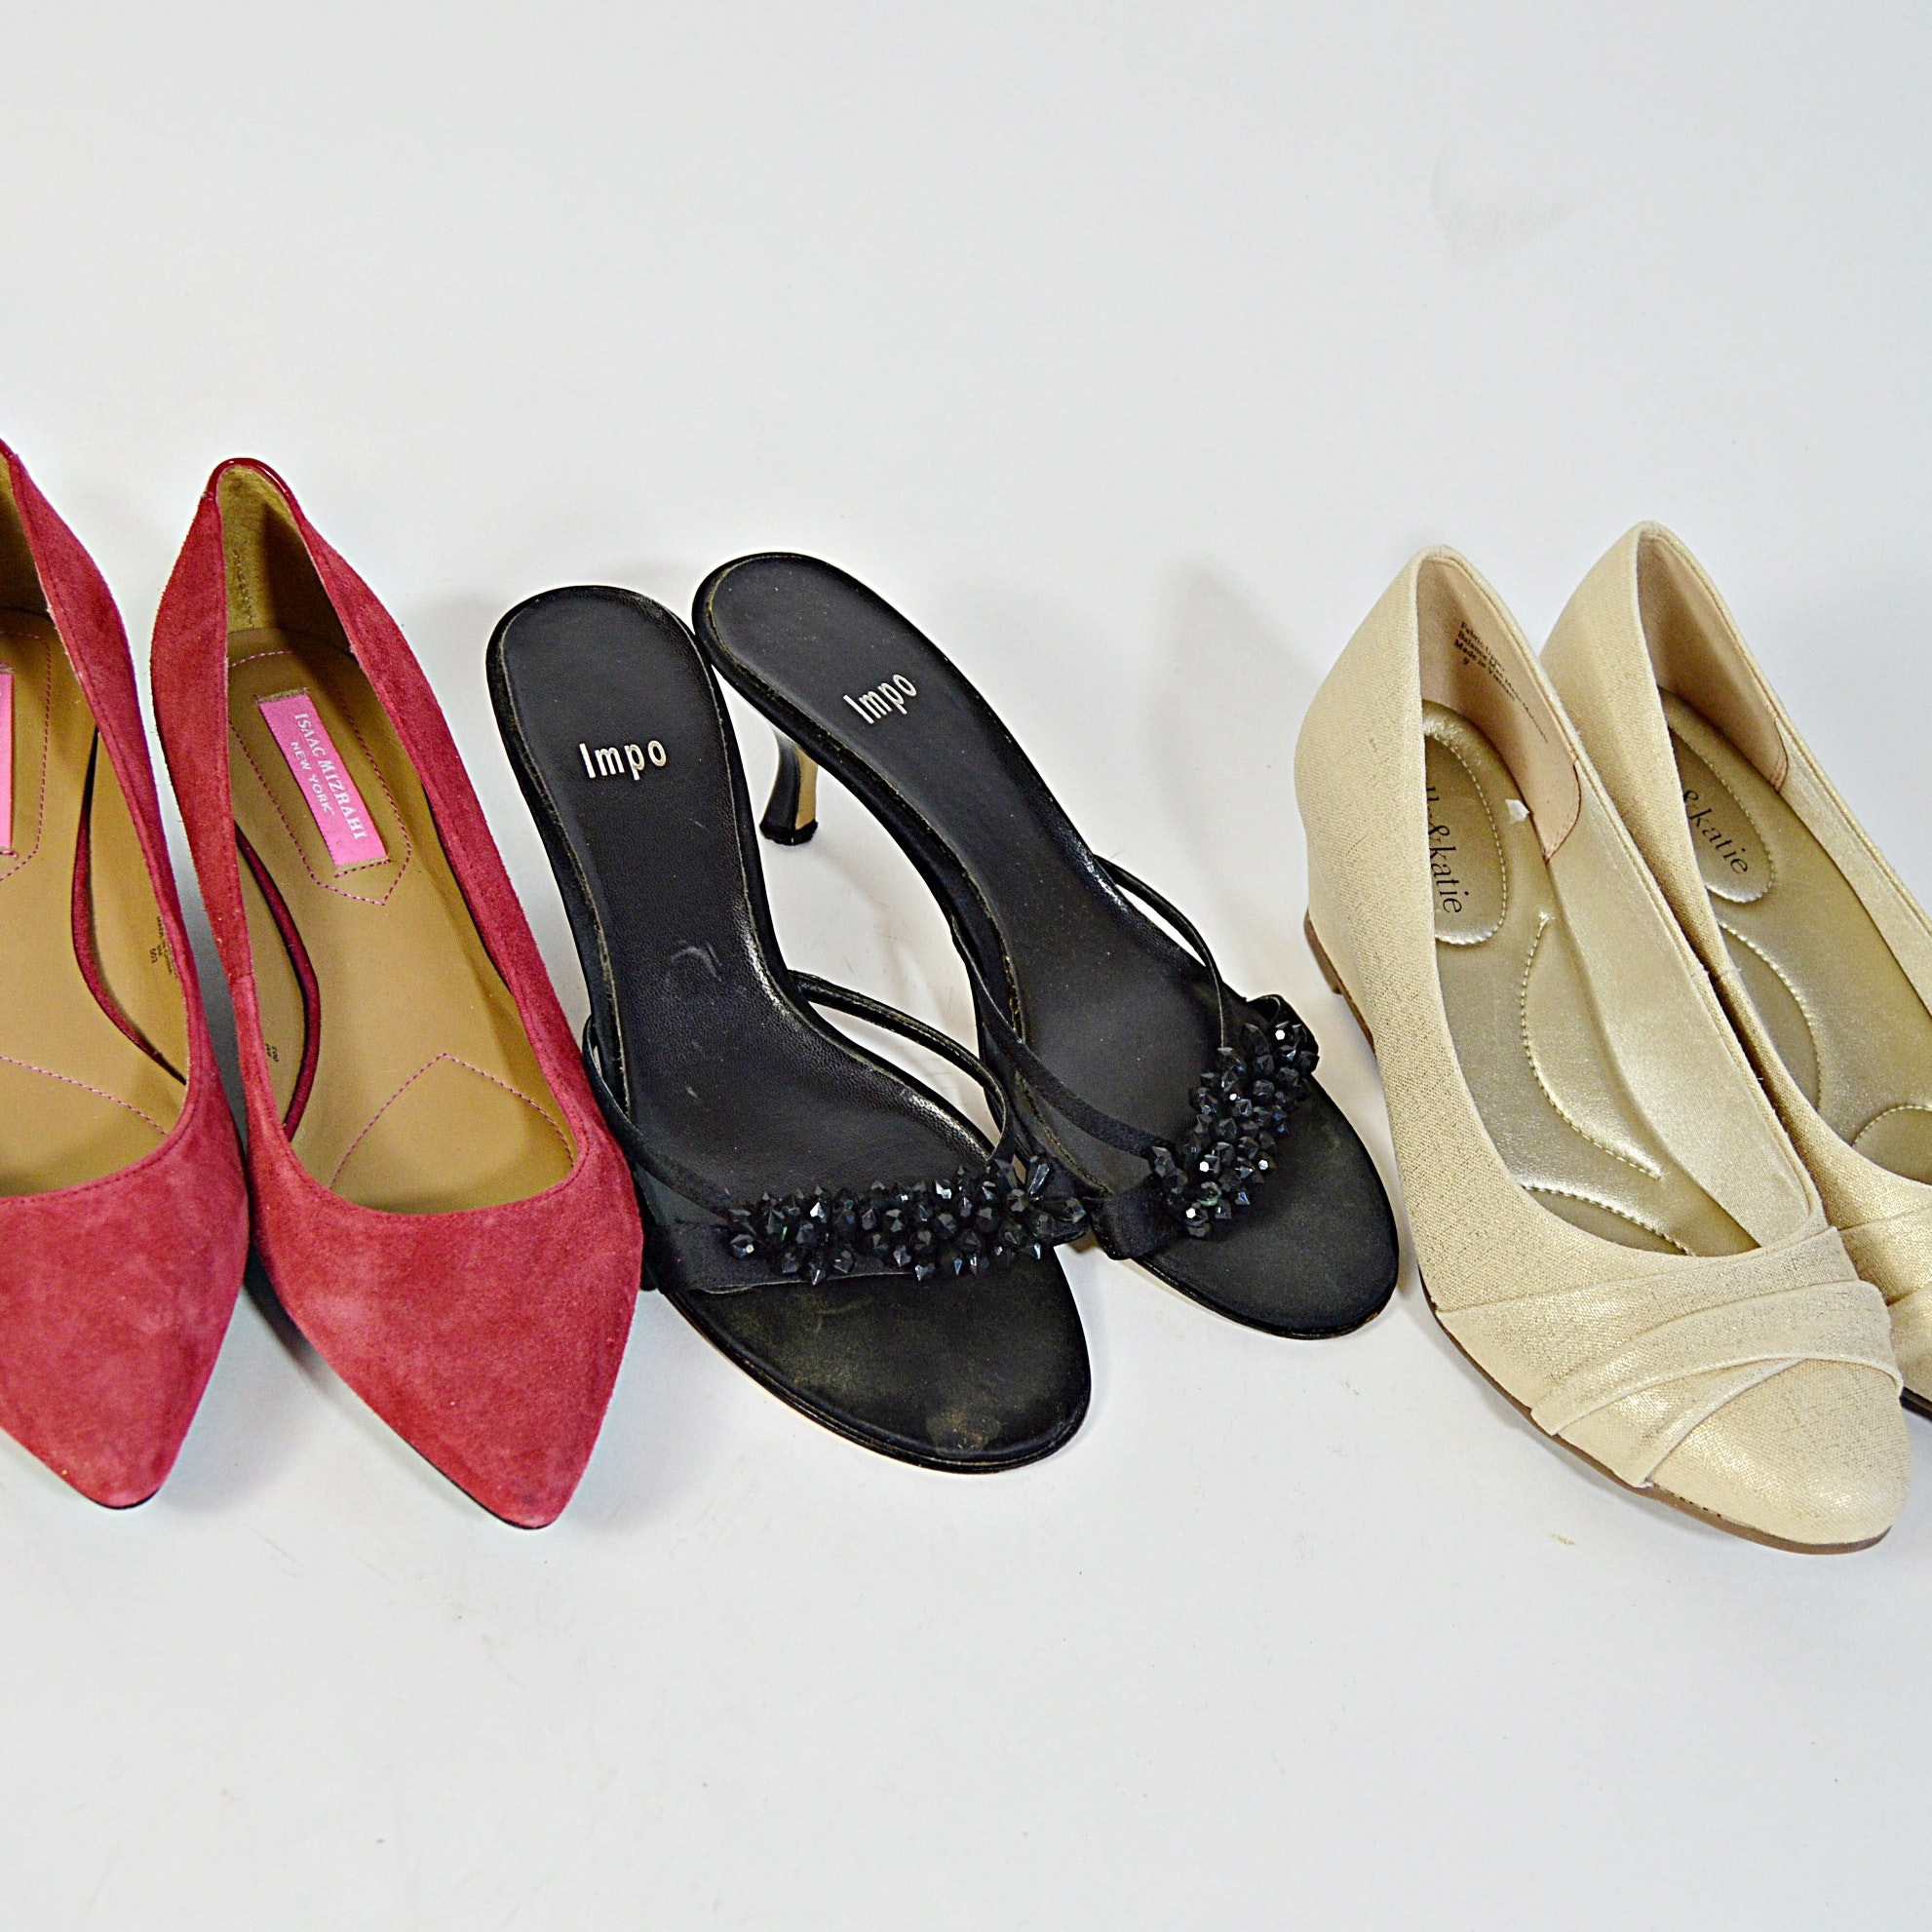 Isaac Mizrahi, Impo and Kelly & Katie Shoes, 8M and 9M